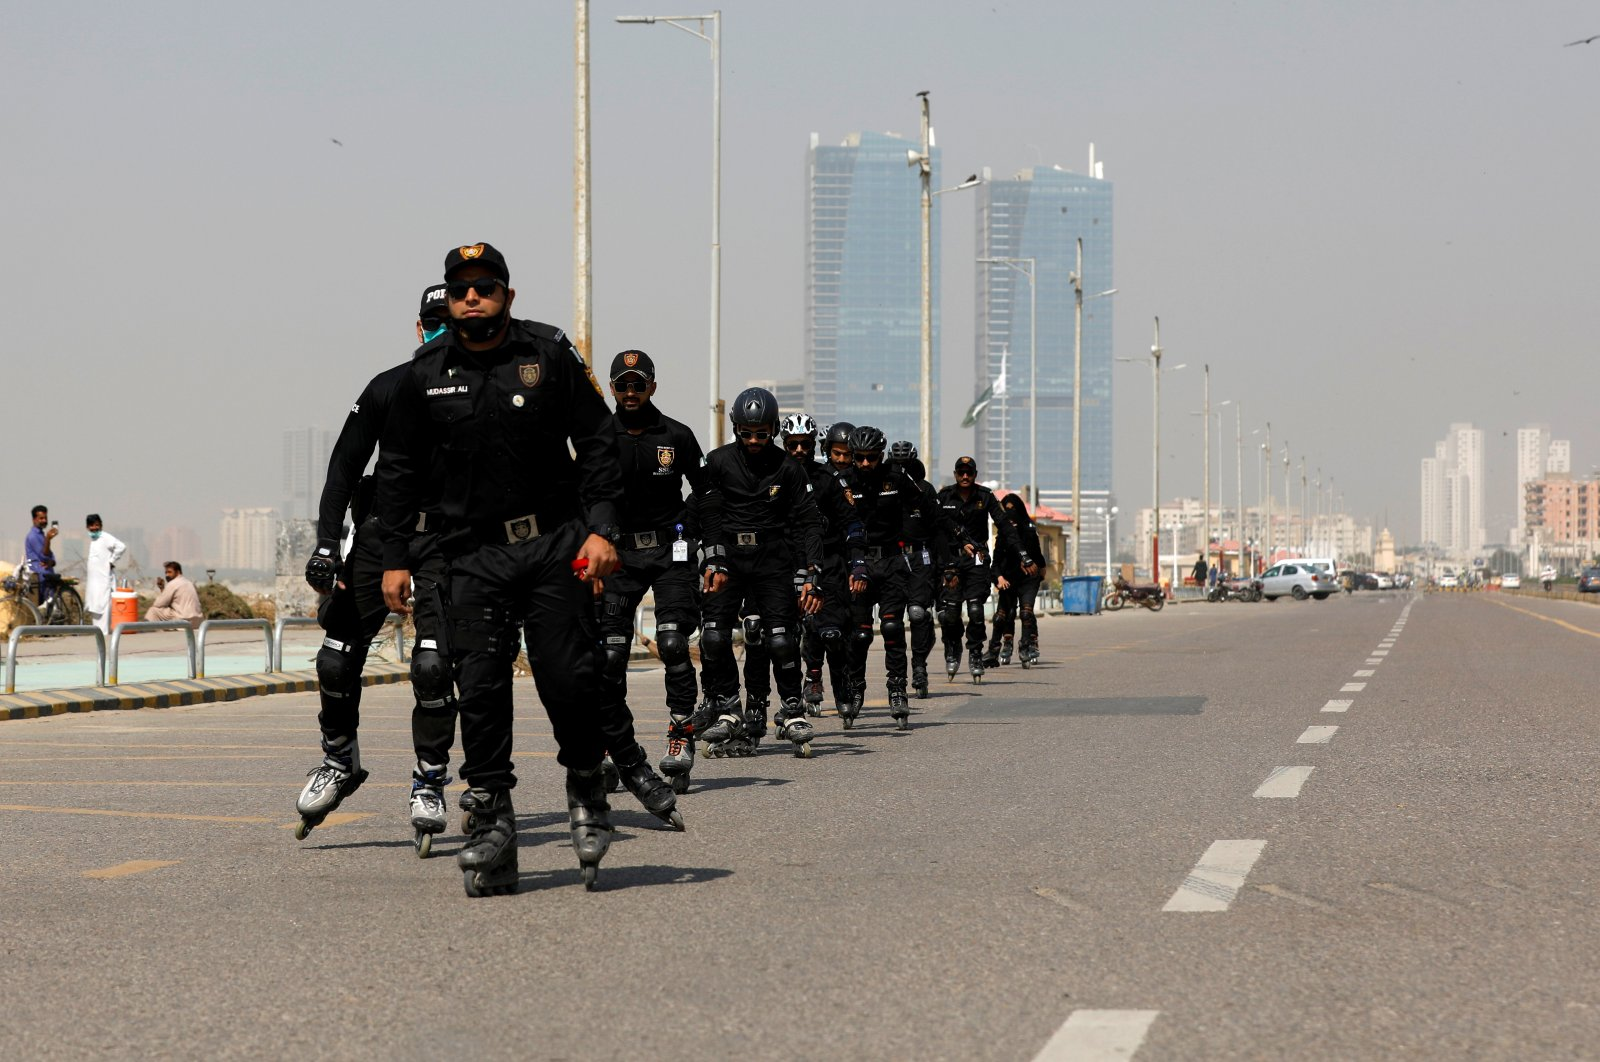 Special Security Unit (SSU) police members rollerblade during practice along the seafront in Karachi, Pakistan, Feb. 19, 2021. (Reuters Photo)